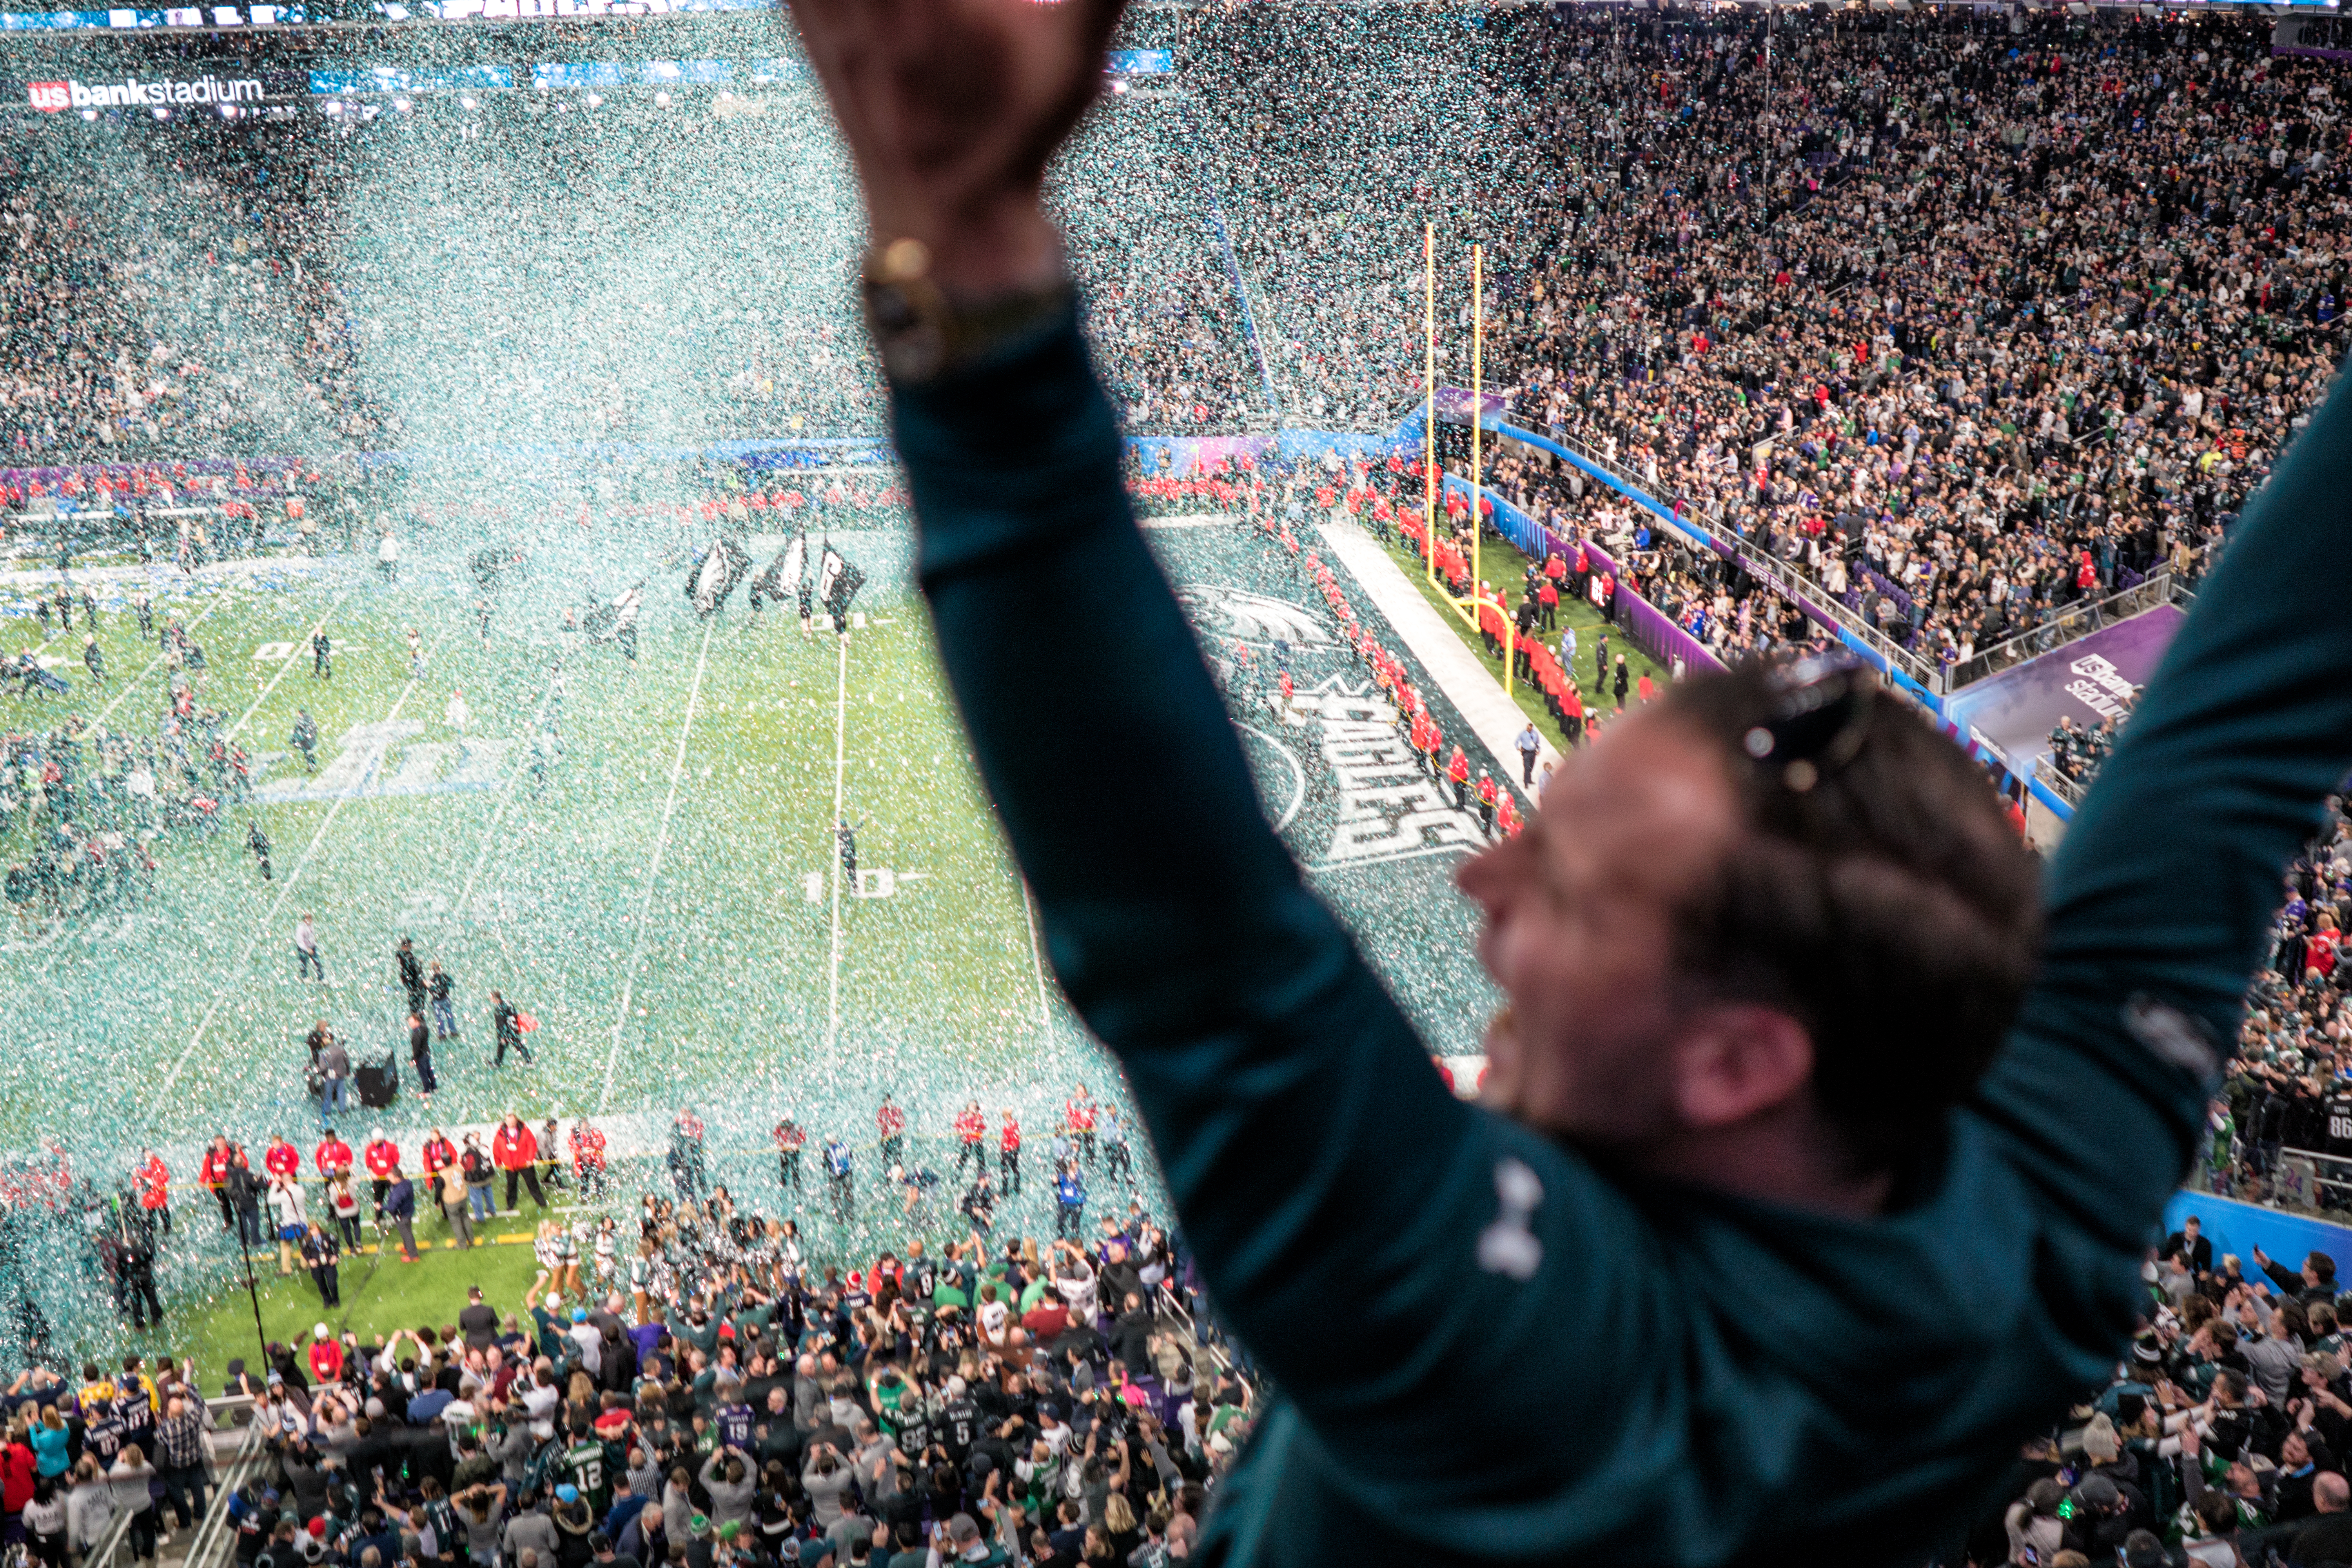 6b4052b19 An Eagles fan in attendance at U.S. Bank Stadium celebrates following the  team s victory at Super Bowl LII.